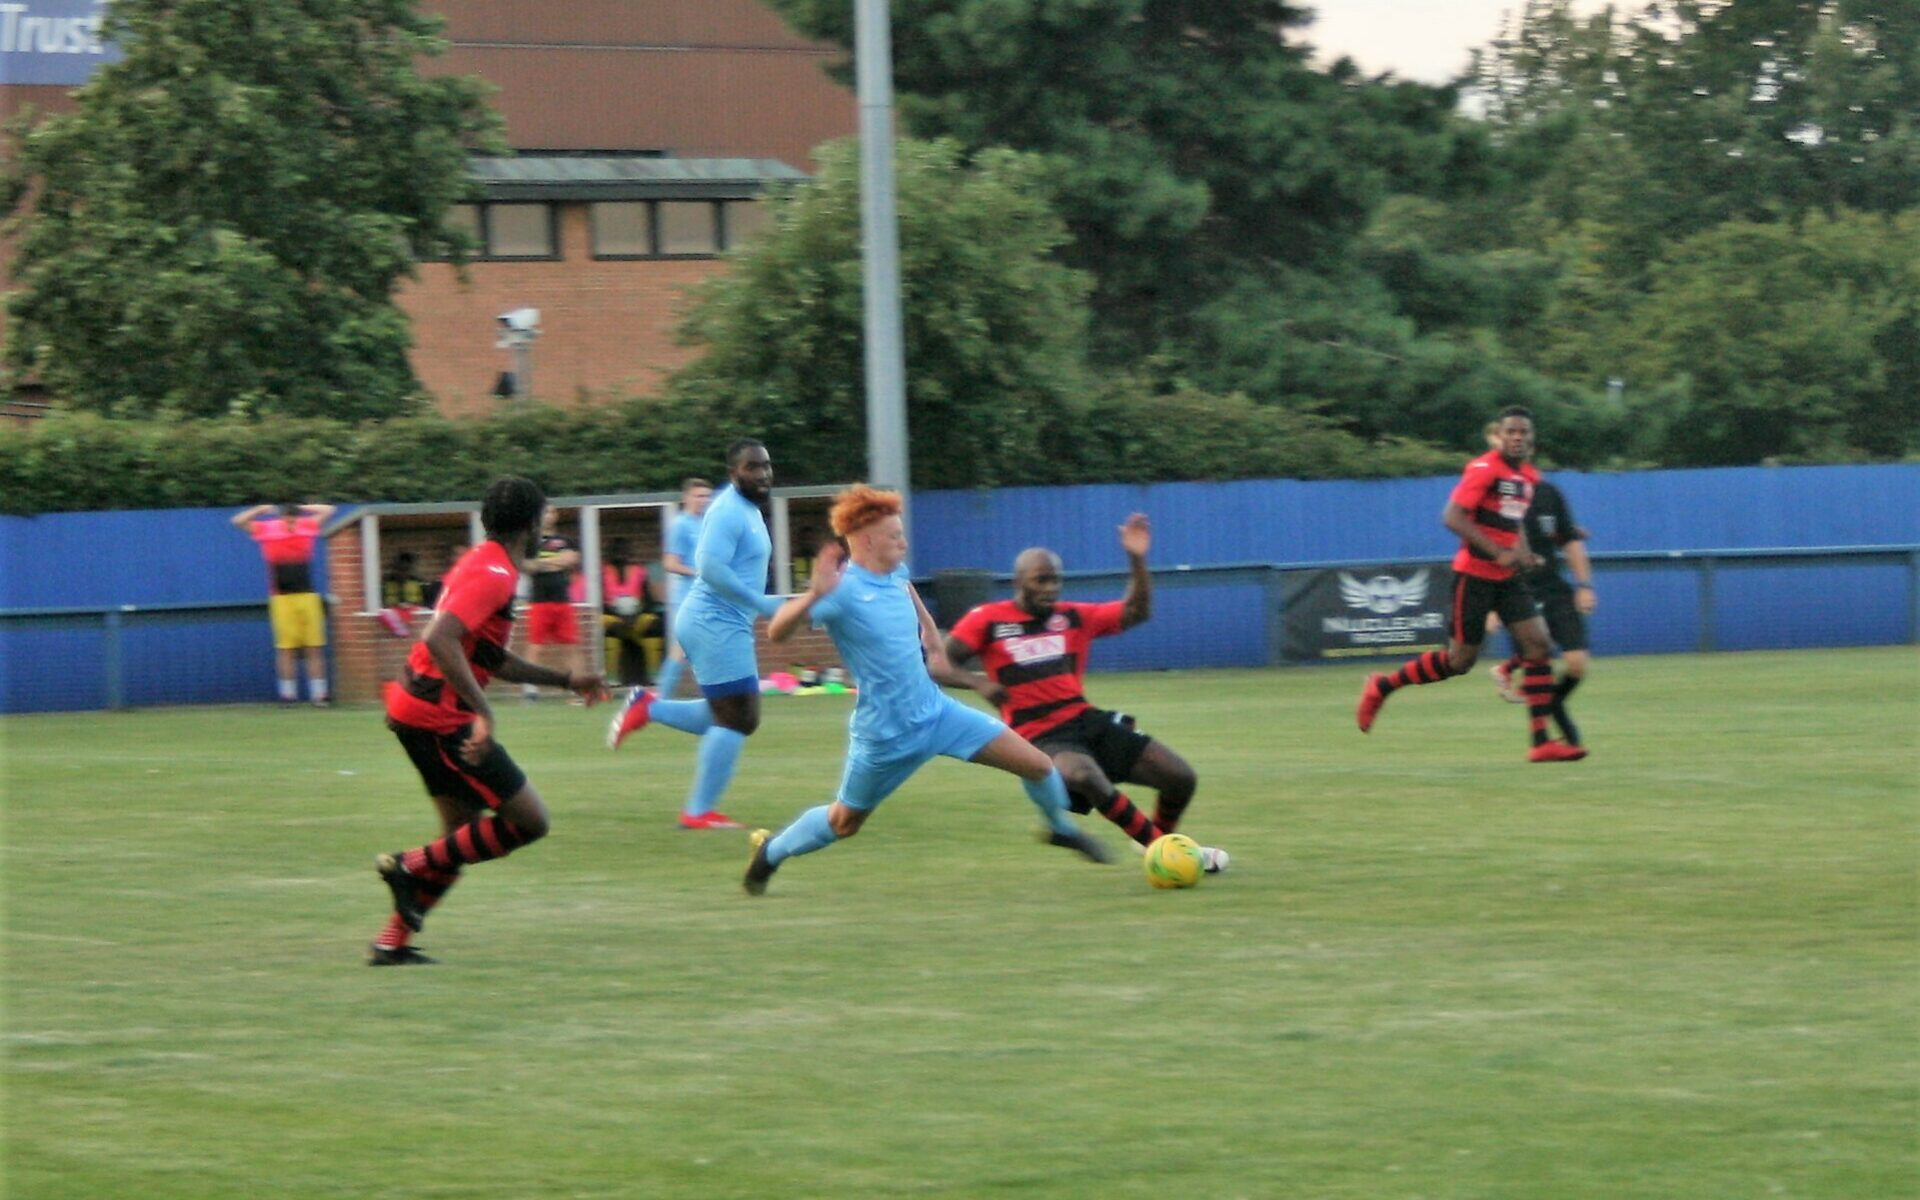 BLUES HIT FOUR IN FIRST WIN Featured Image